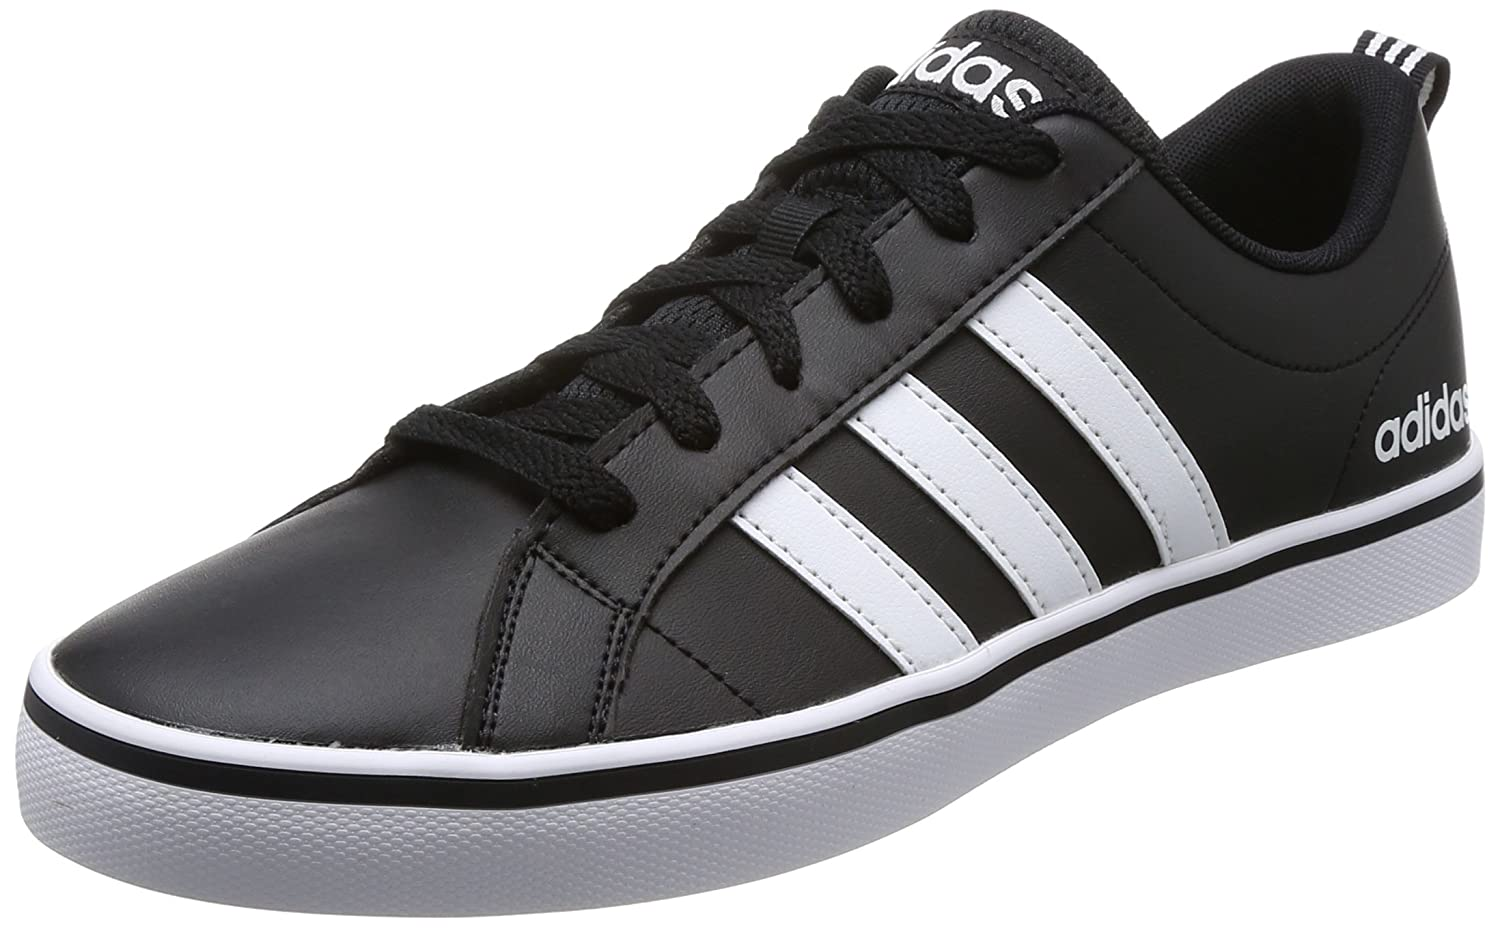 f00255e41487 Adidas Men s Vs Pace Basketball Shoes  Buy Online at Low Prices in India -  Amazon.in